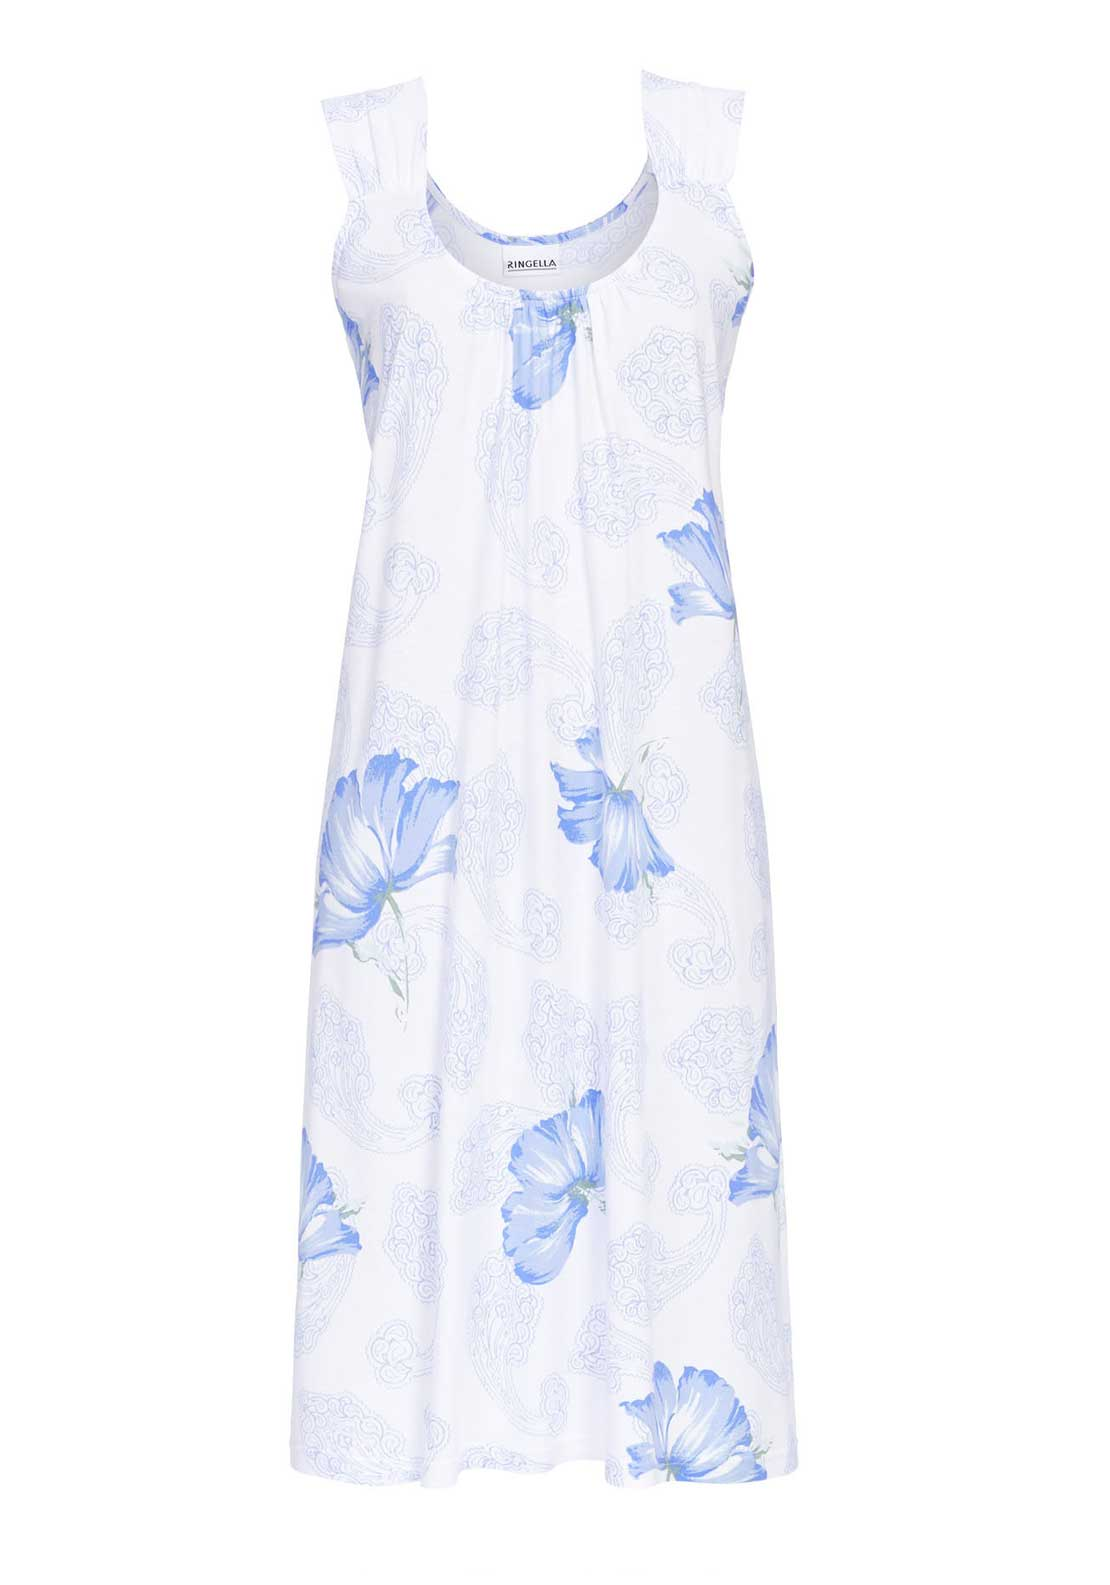 Ringella Floral Print Sleeveless Nightdress, White and Blue